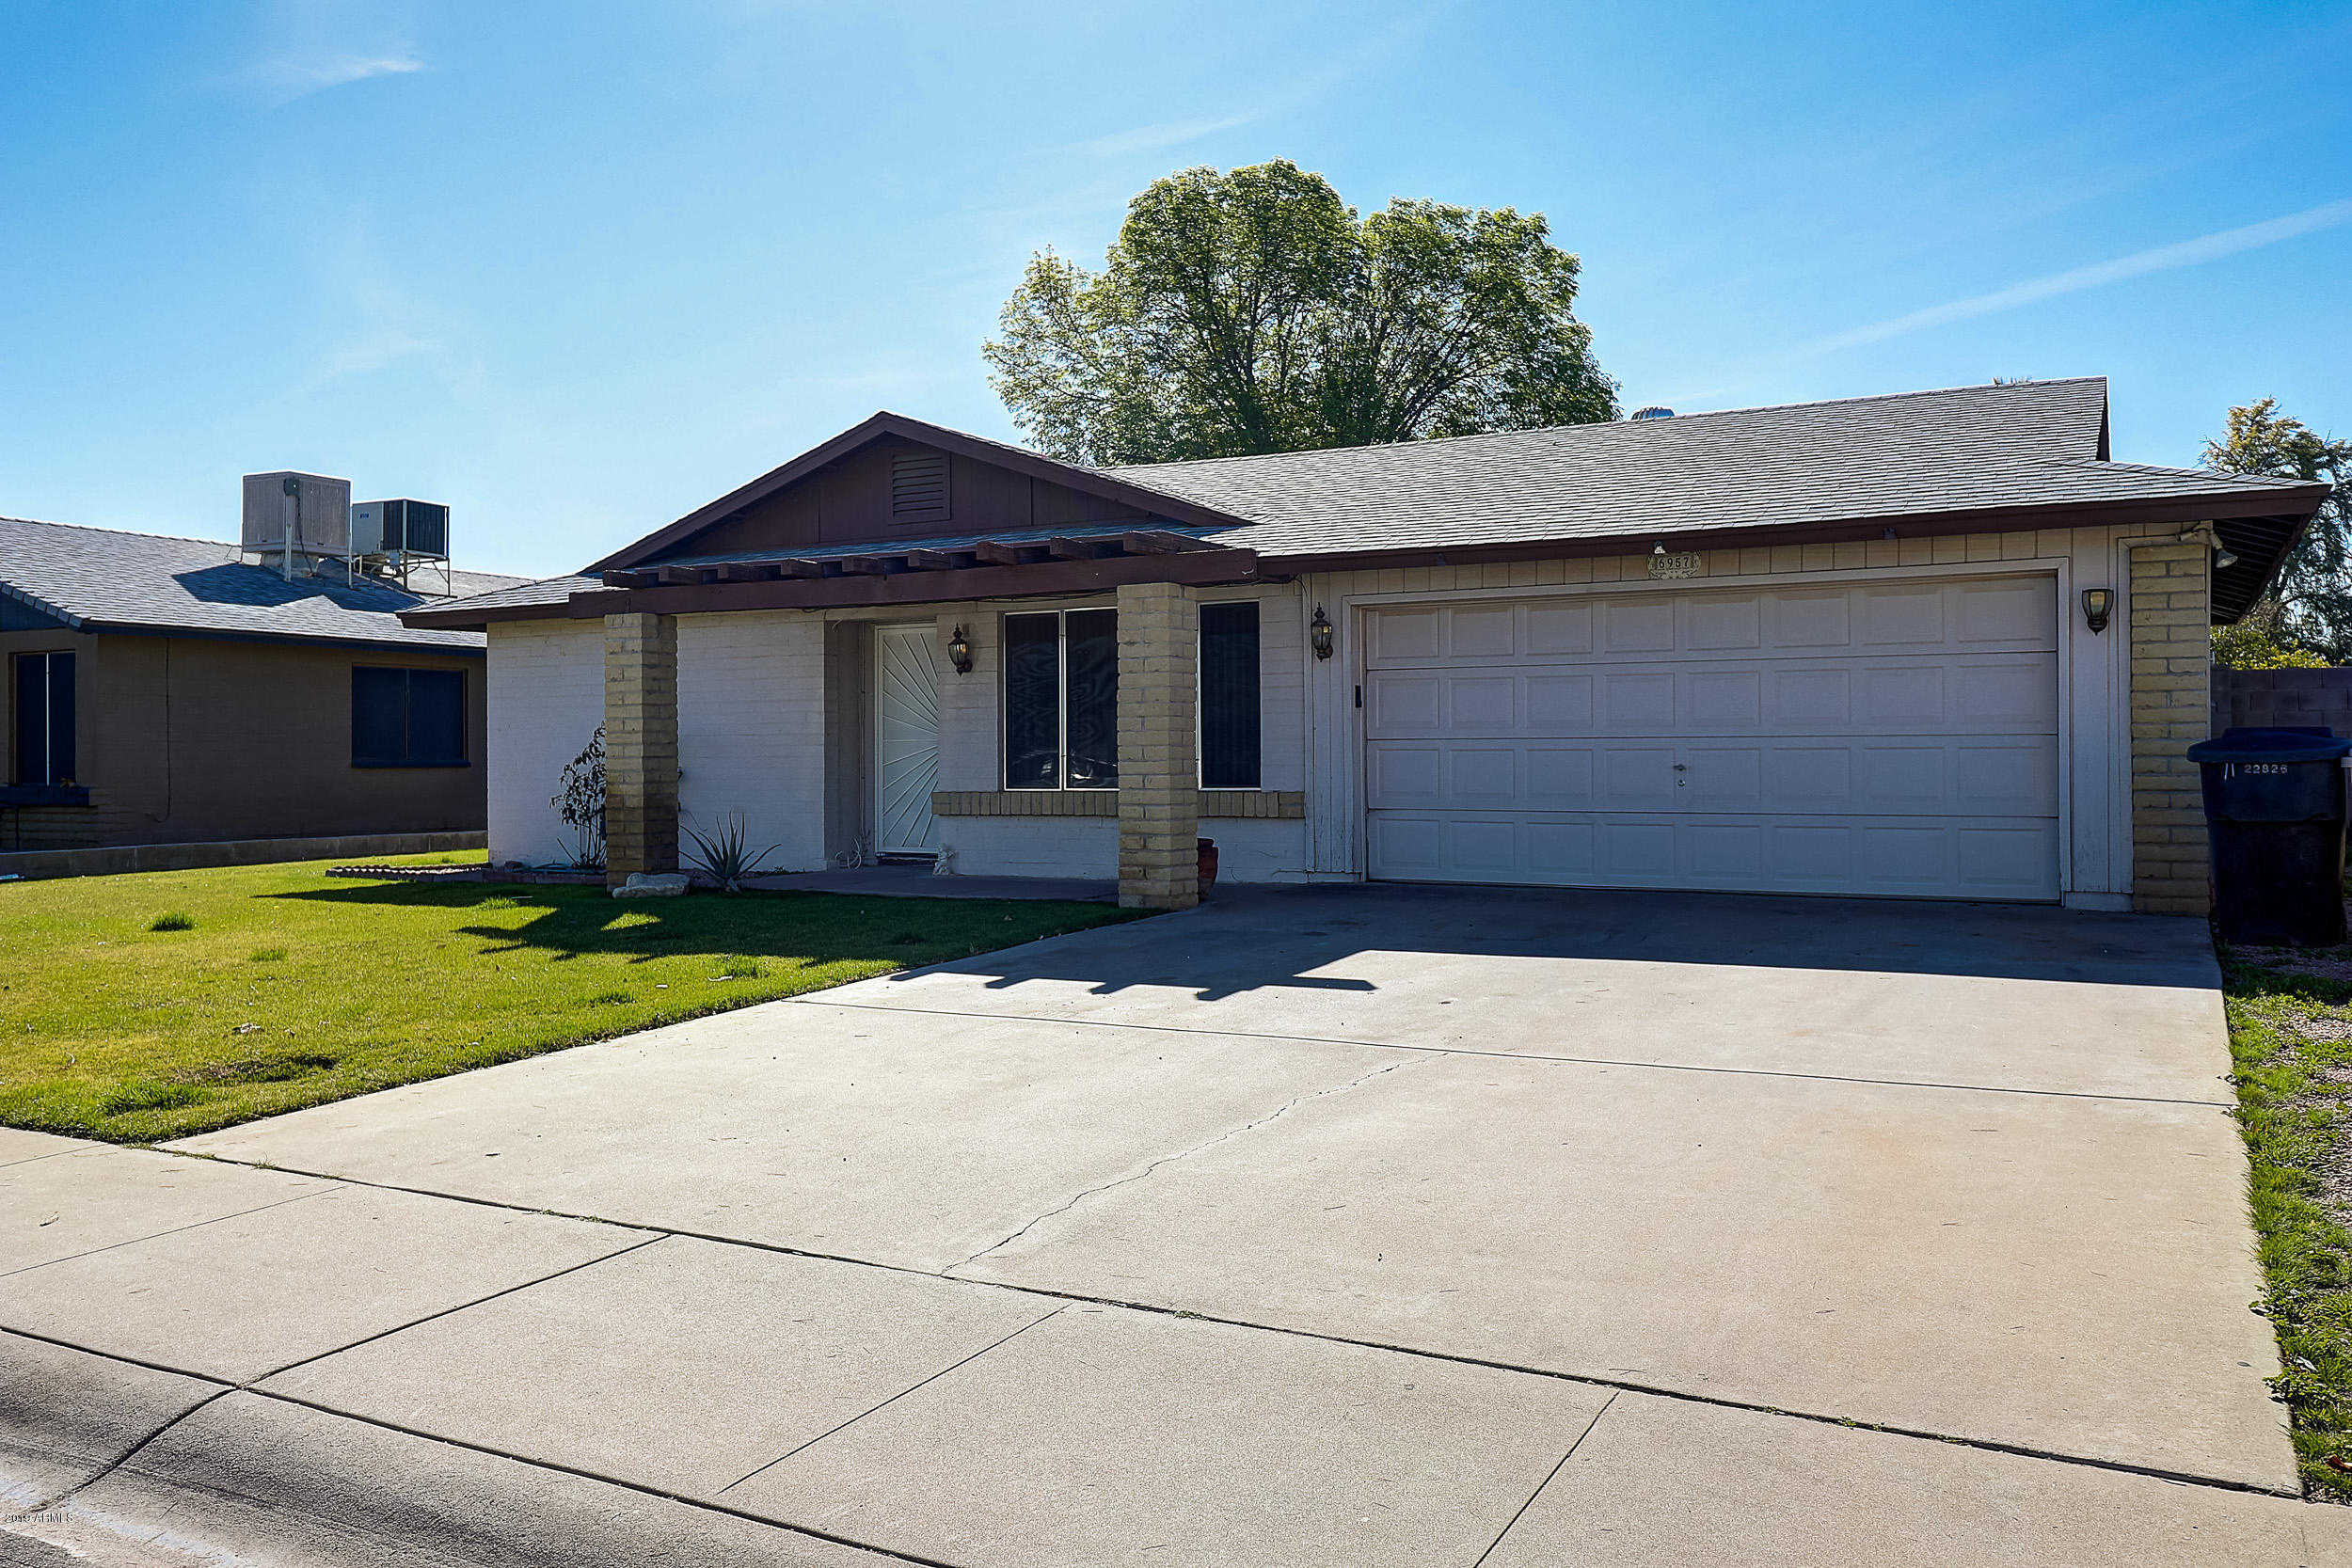 $204,900 - 3Br/2Ba - Home for Sale in Skyview West Unit Three, Glendale